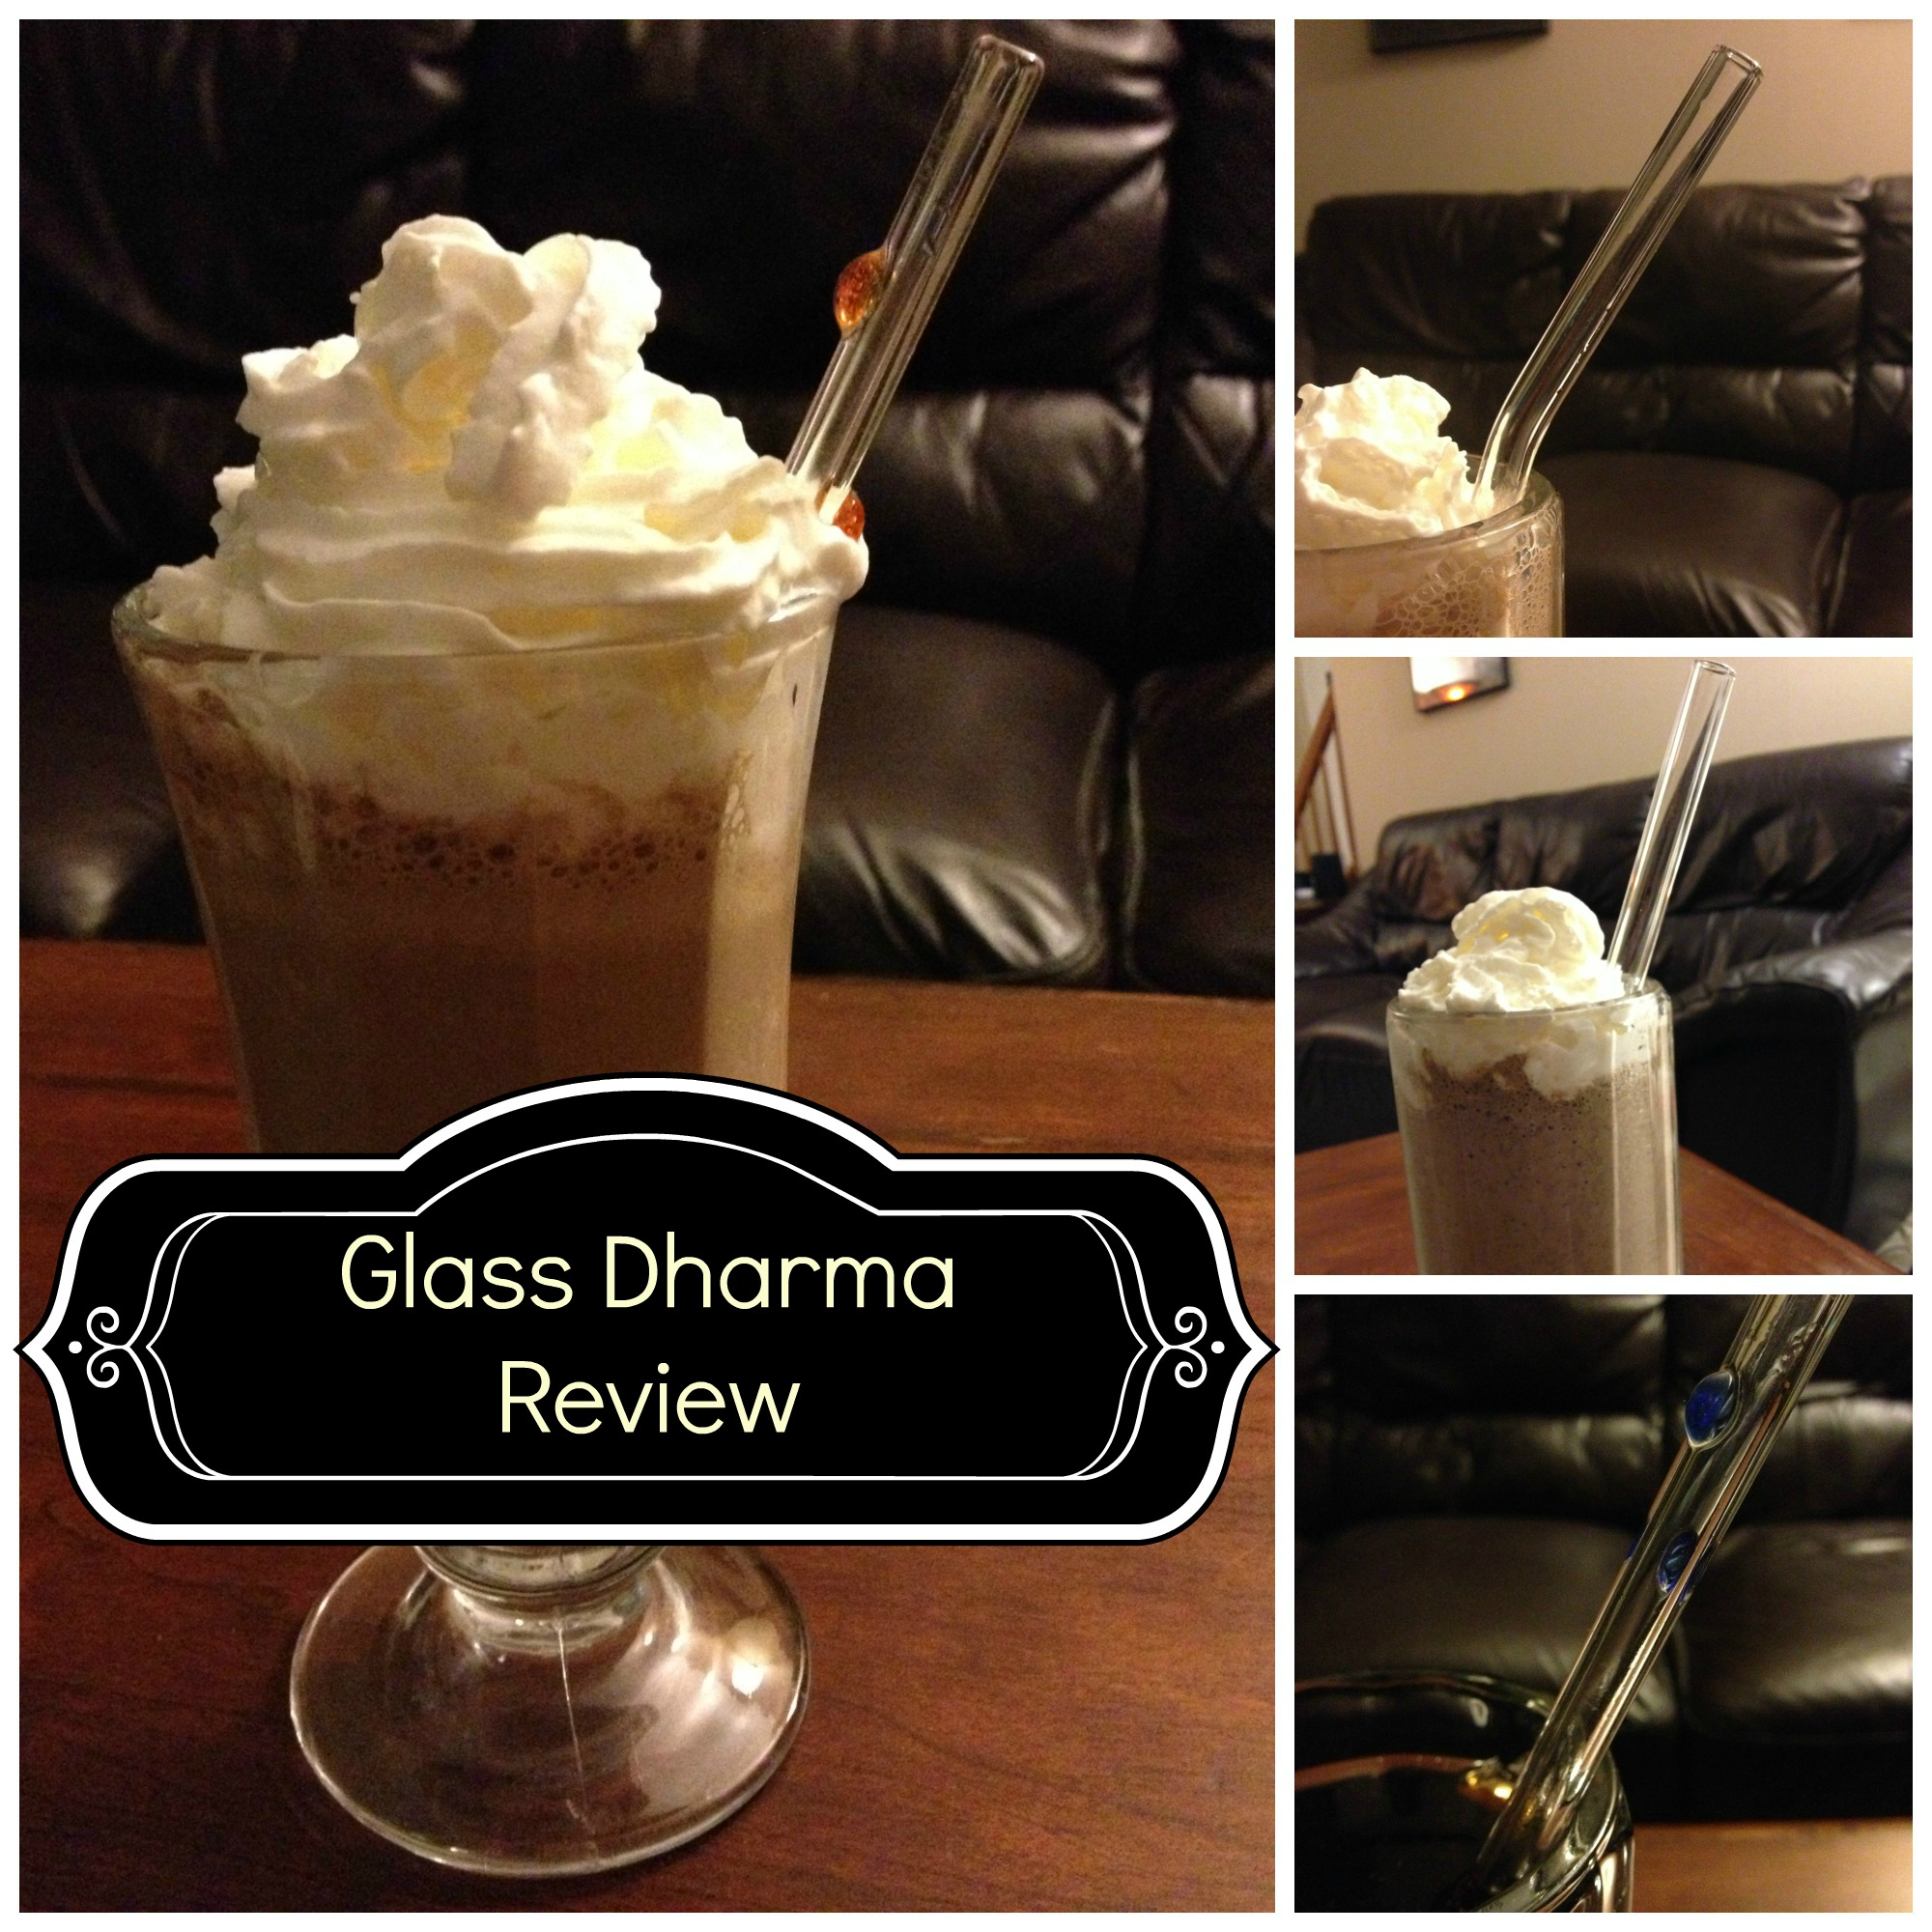 Glass Dharma: Saving the Environment with Glass Straws